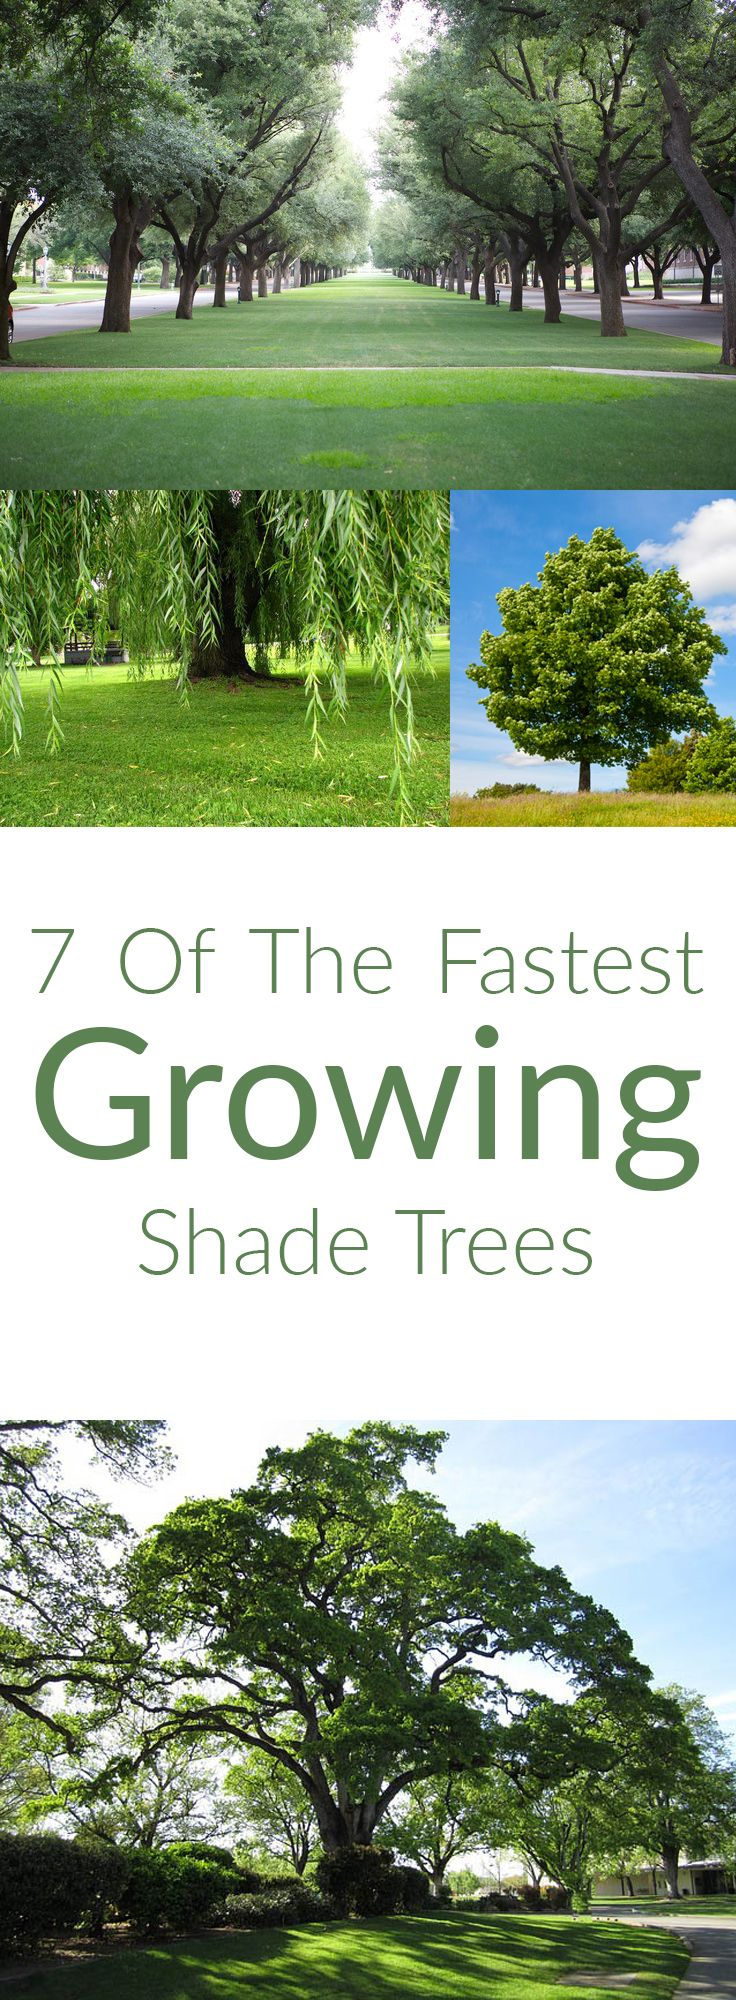 These varieties of trees will come the closest to the need for an instant solution for the need for shade. Bonus is that they are lovely too! http://gailcorcoran.realtor